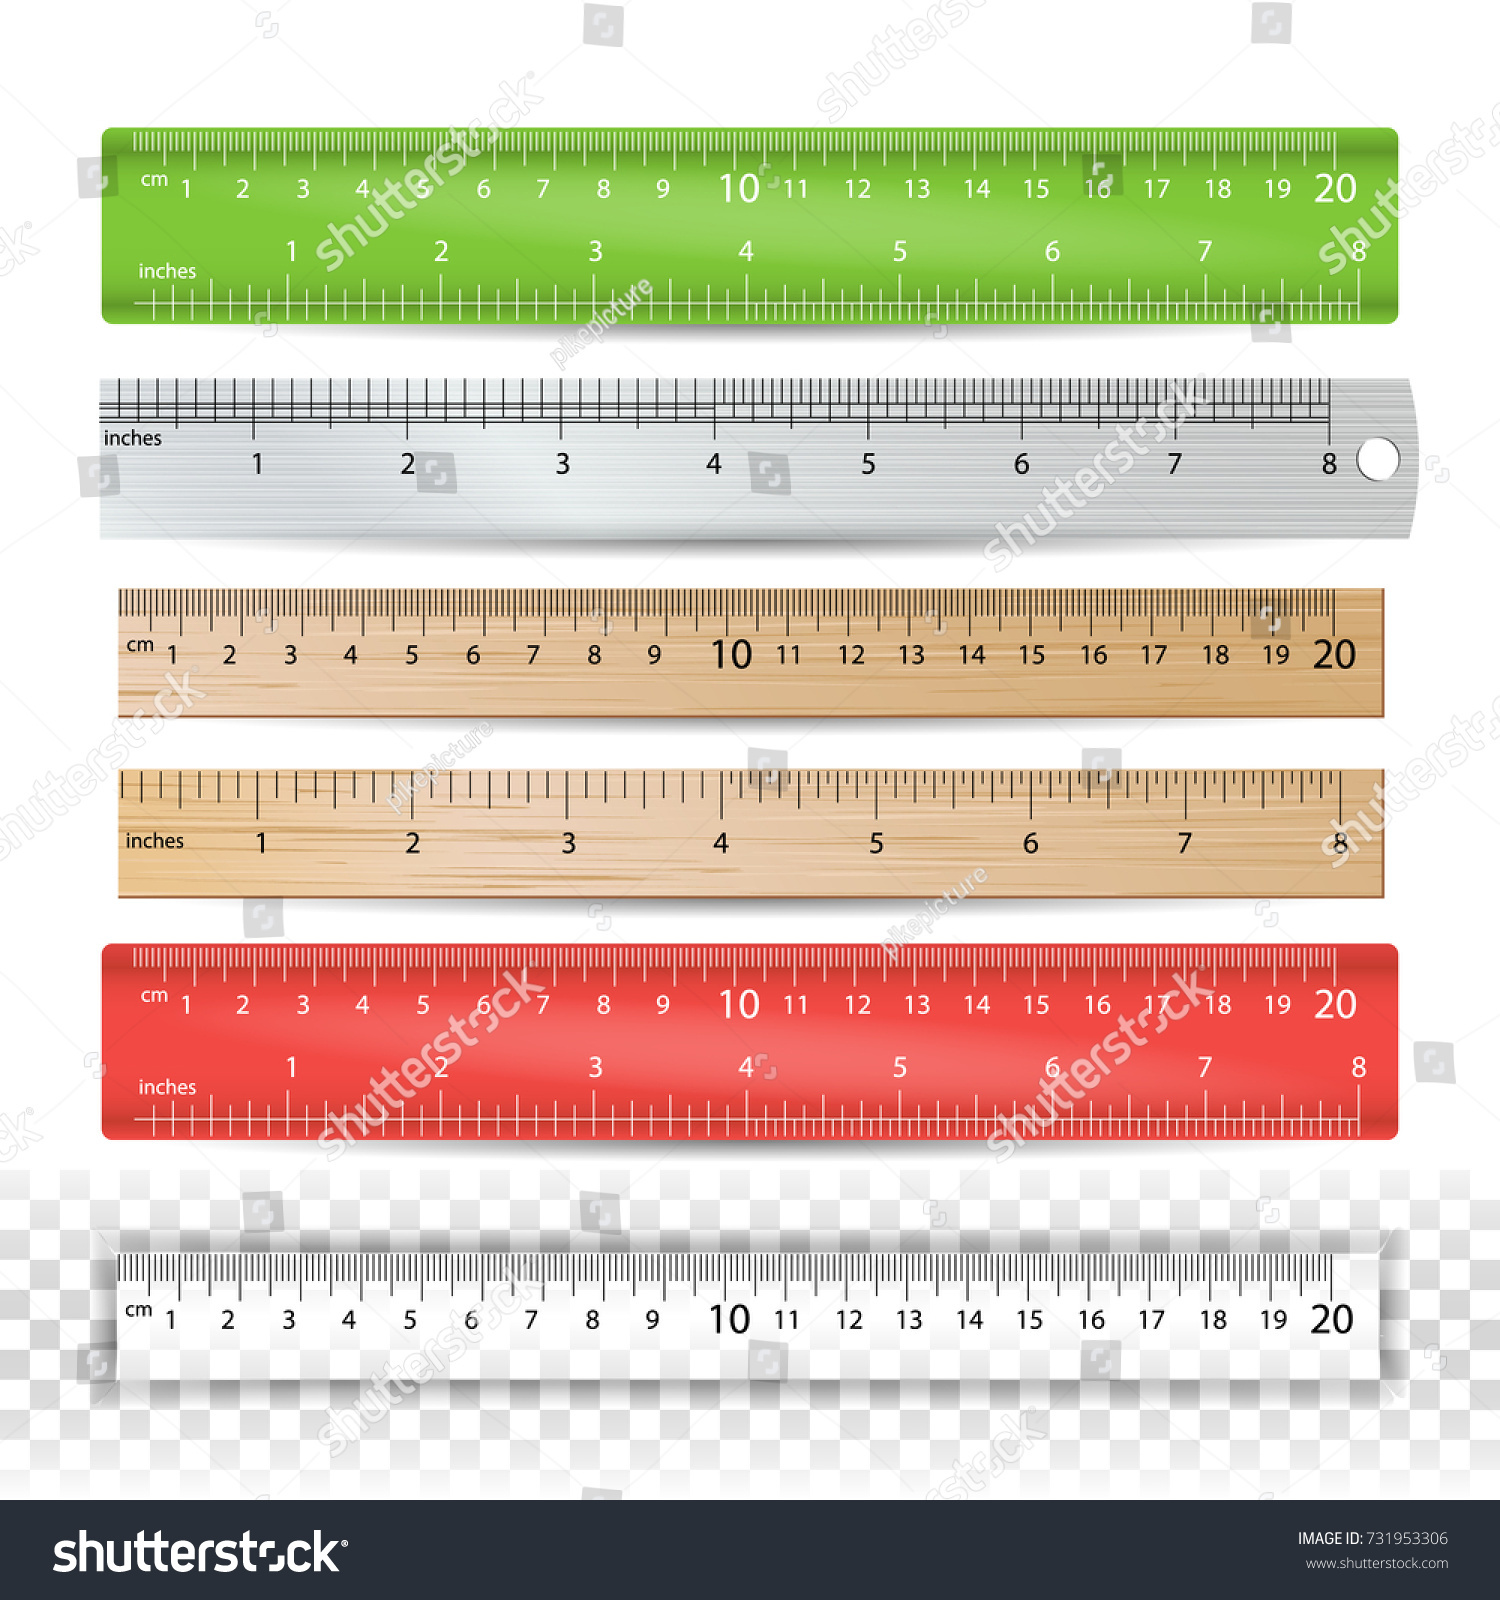 Worksheet Measuring In Centimeters Worksheet Fun